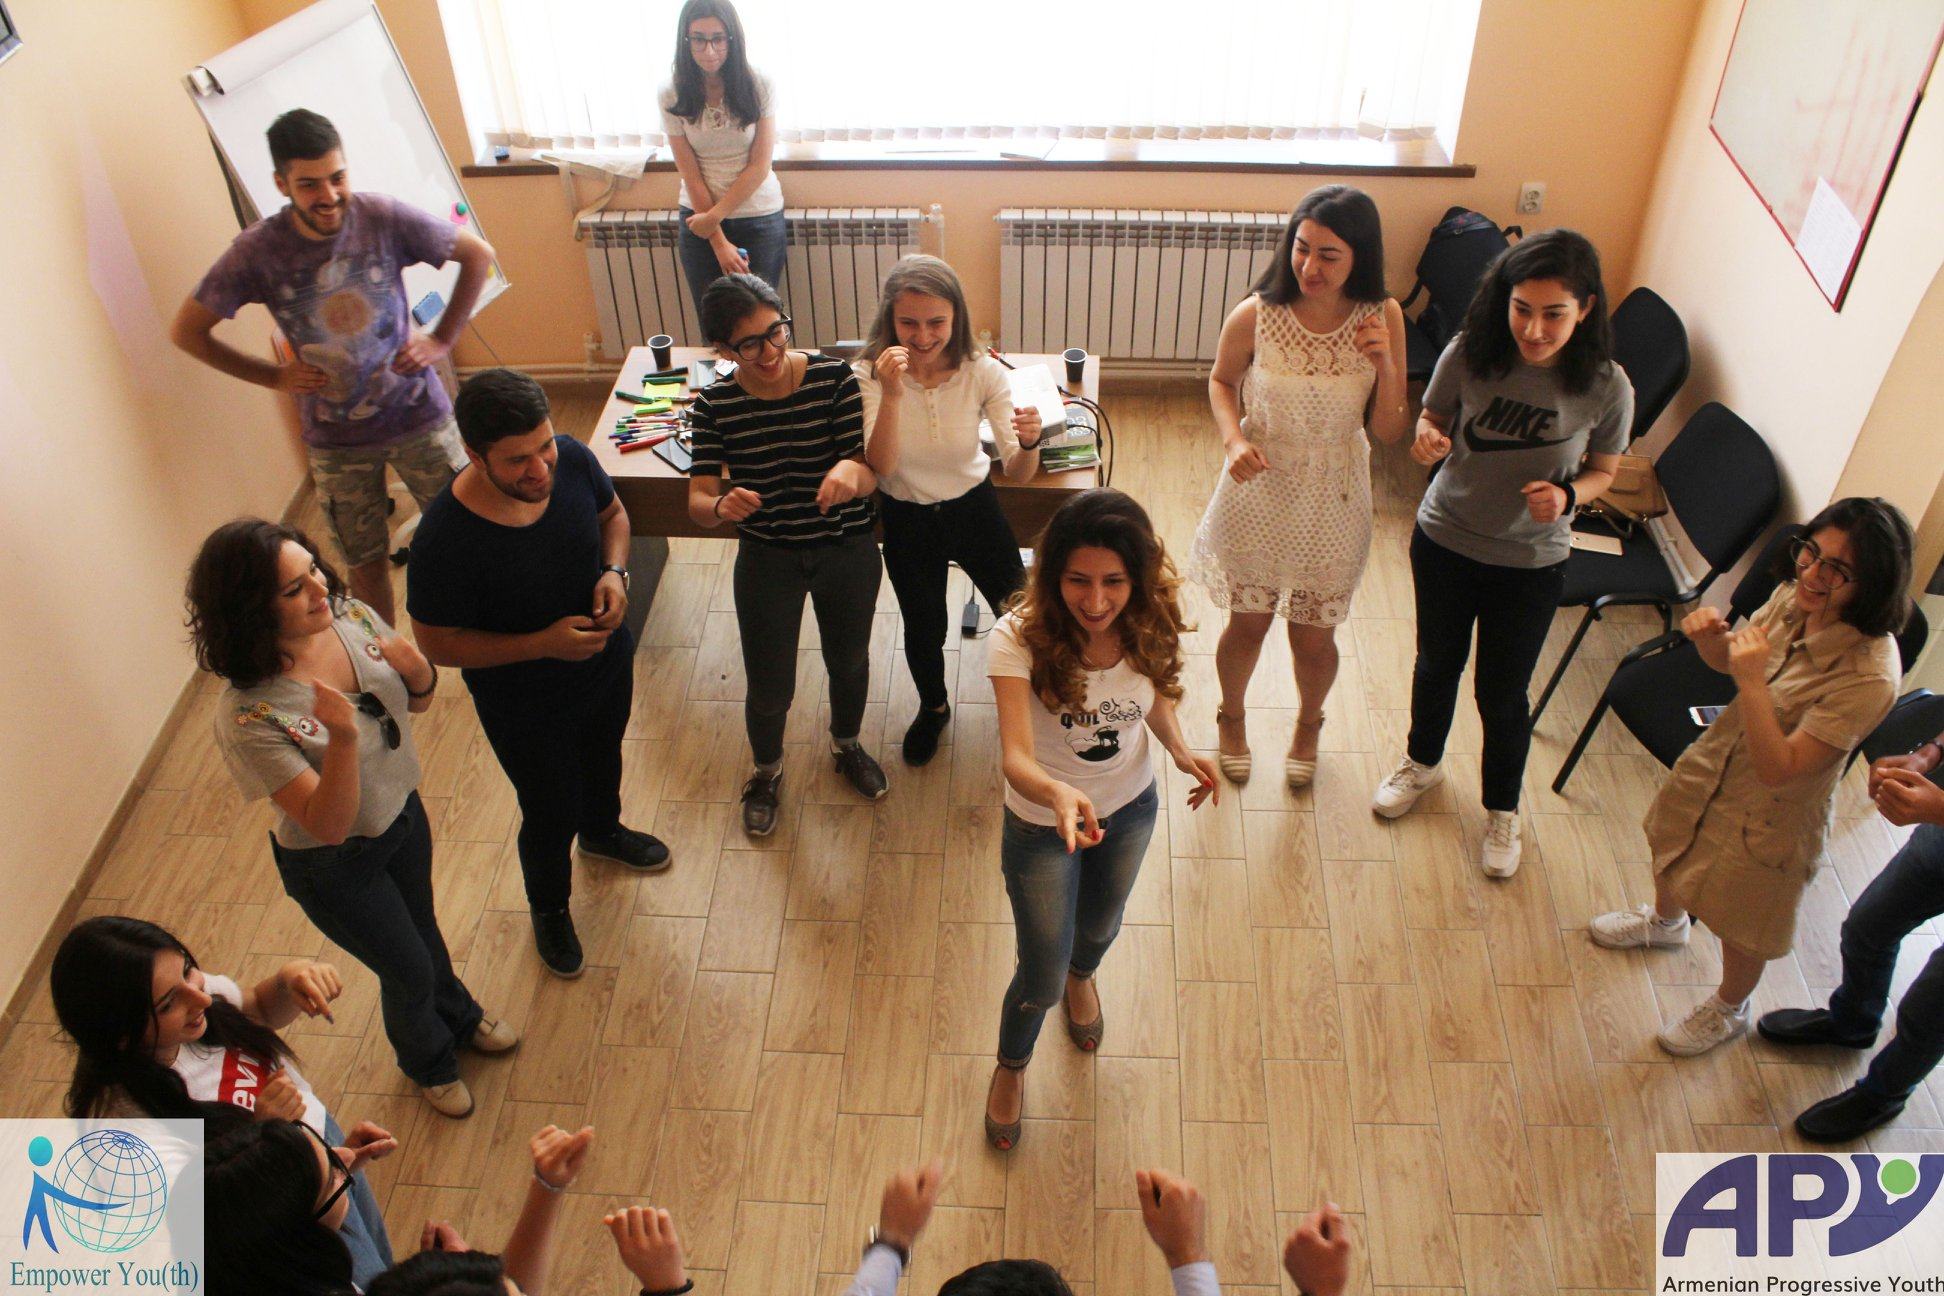 Armenian Progressive Youth, Armenia, young people, leadership